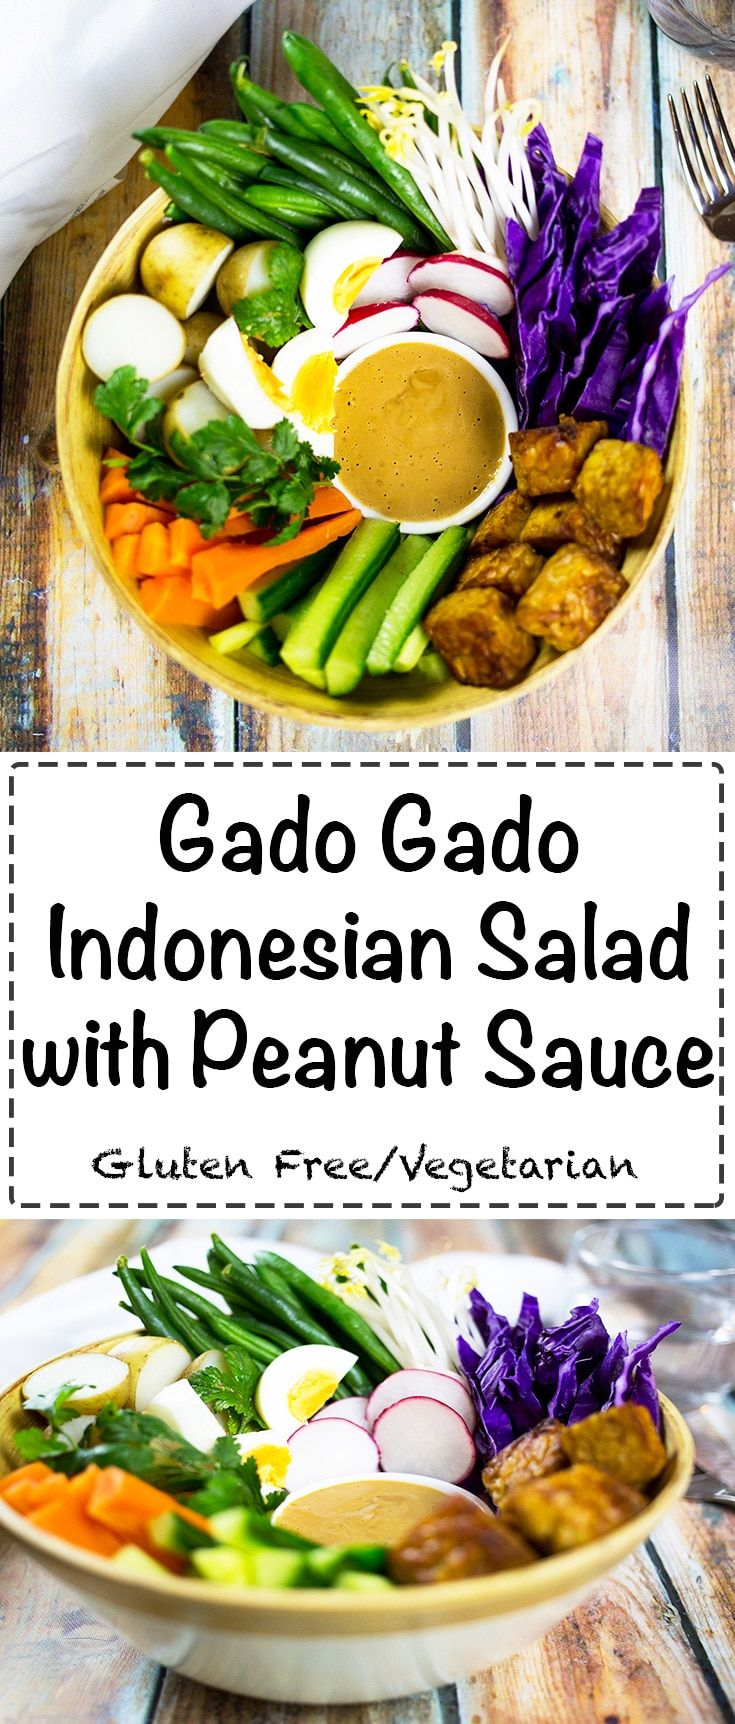 22928 best meatless monday recipes images on pinterest vegetarian gado gado indonesian salad with peanut sauce a healthy and tasty vegetarian salad real food recipesmeal forumfinder Choice Image